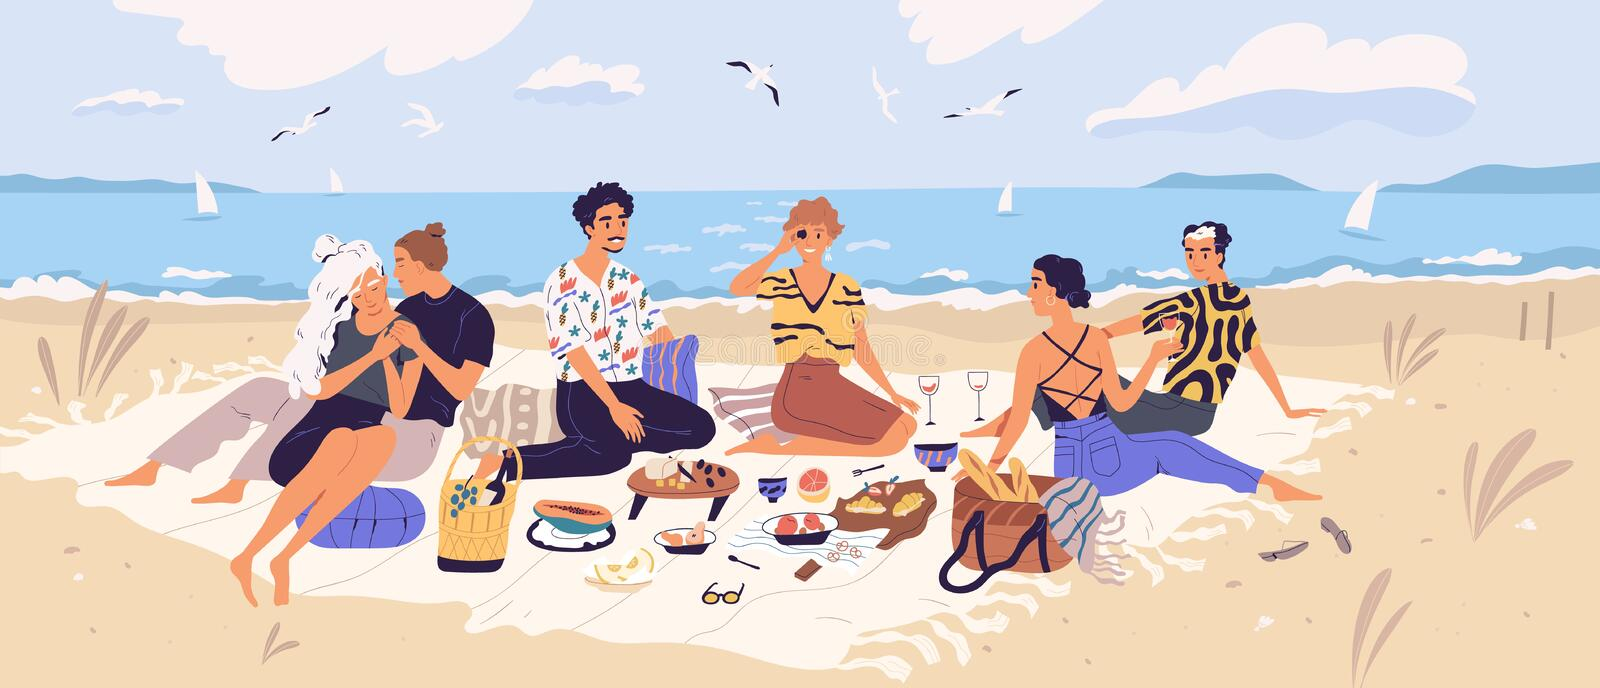 Group of happy friends at picnic on seashore. Young smiling men and women eating food on sandy beach. Cute funny people. Having lunch together on sea shore vector illustration